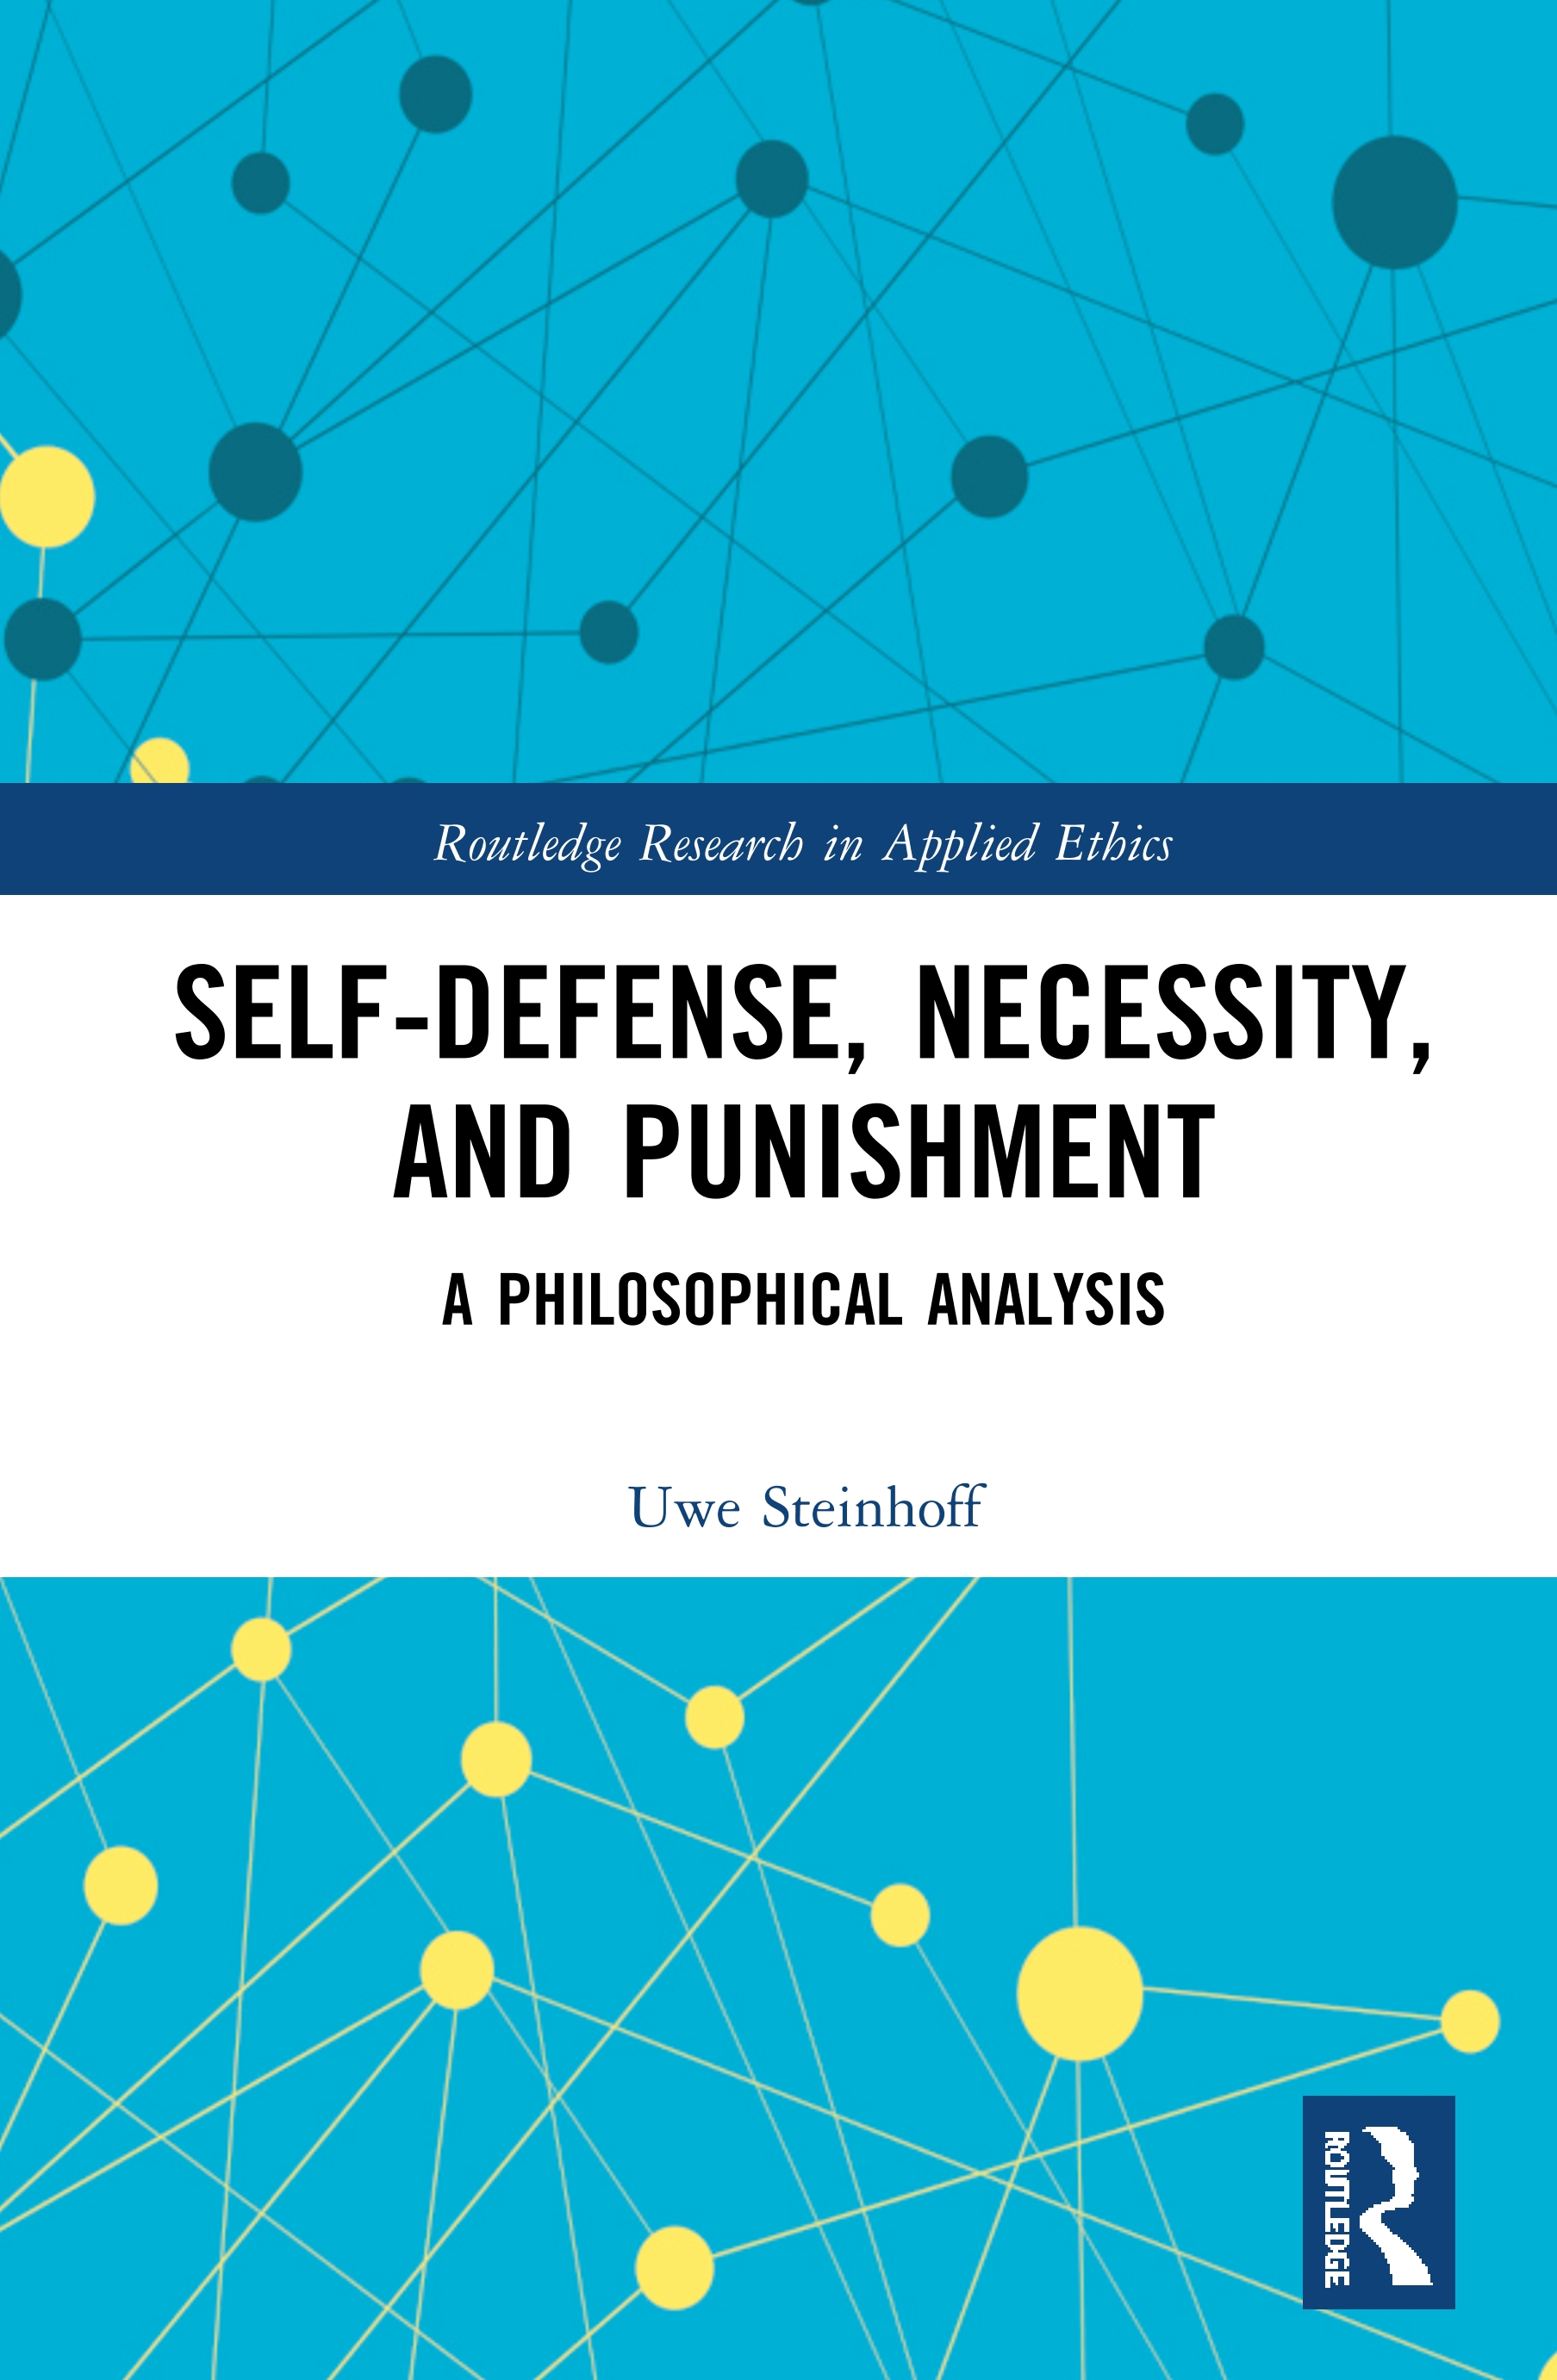 Self-Defense, Necessity, and Punishment: A Philosophical Analysis book cover